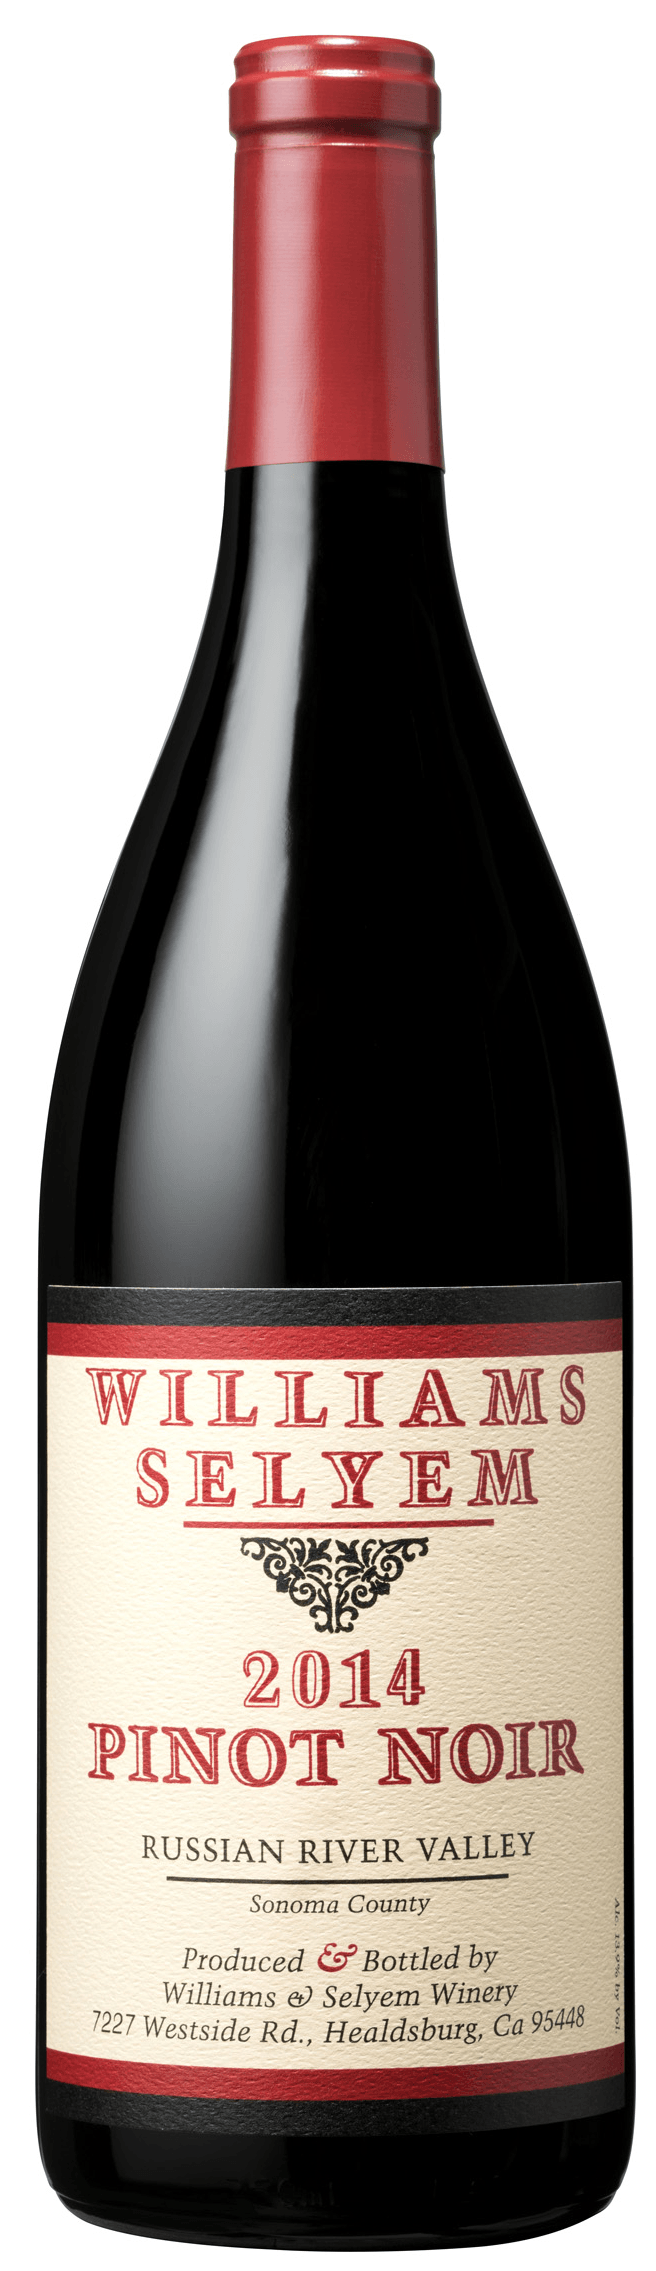 Williams Selyem Pinot Noir Russian River Valley